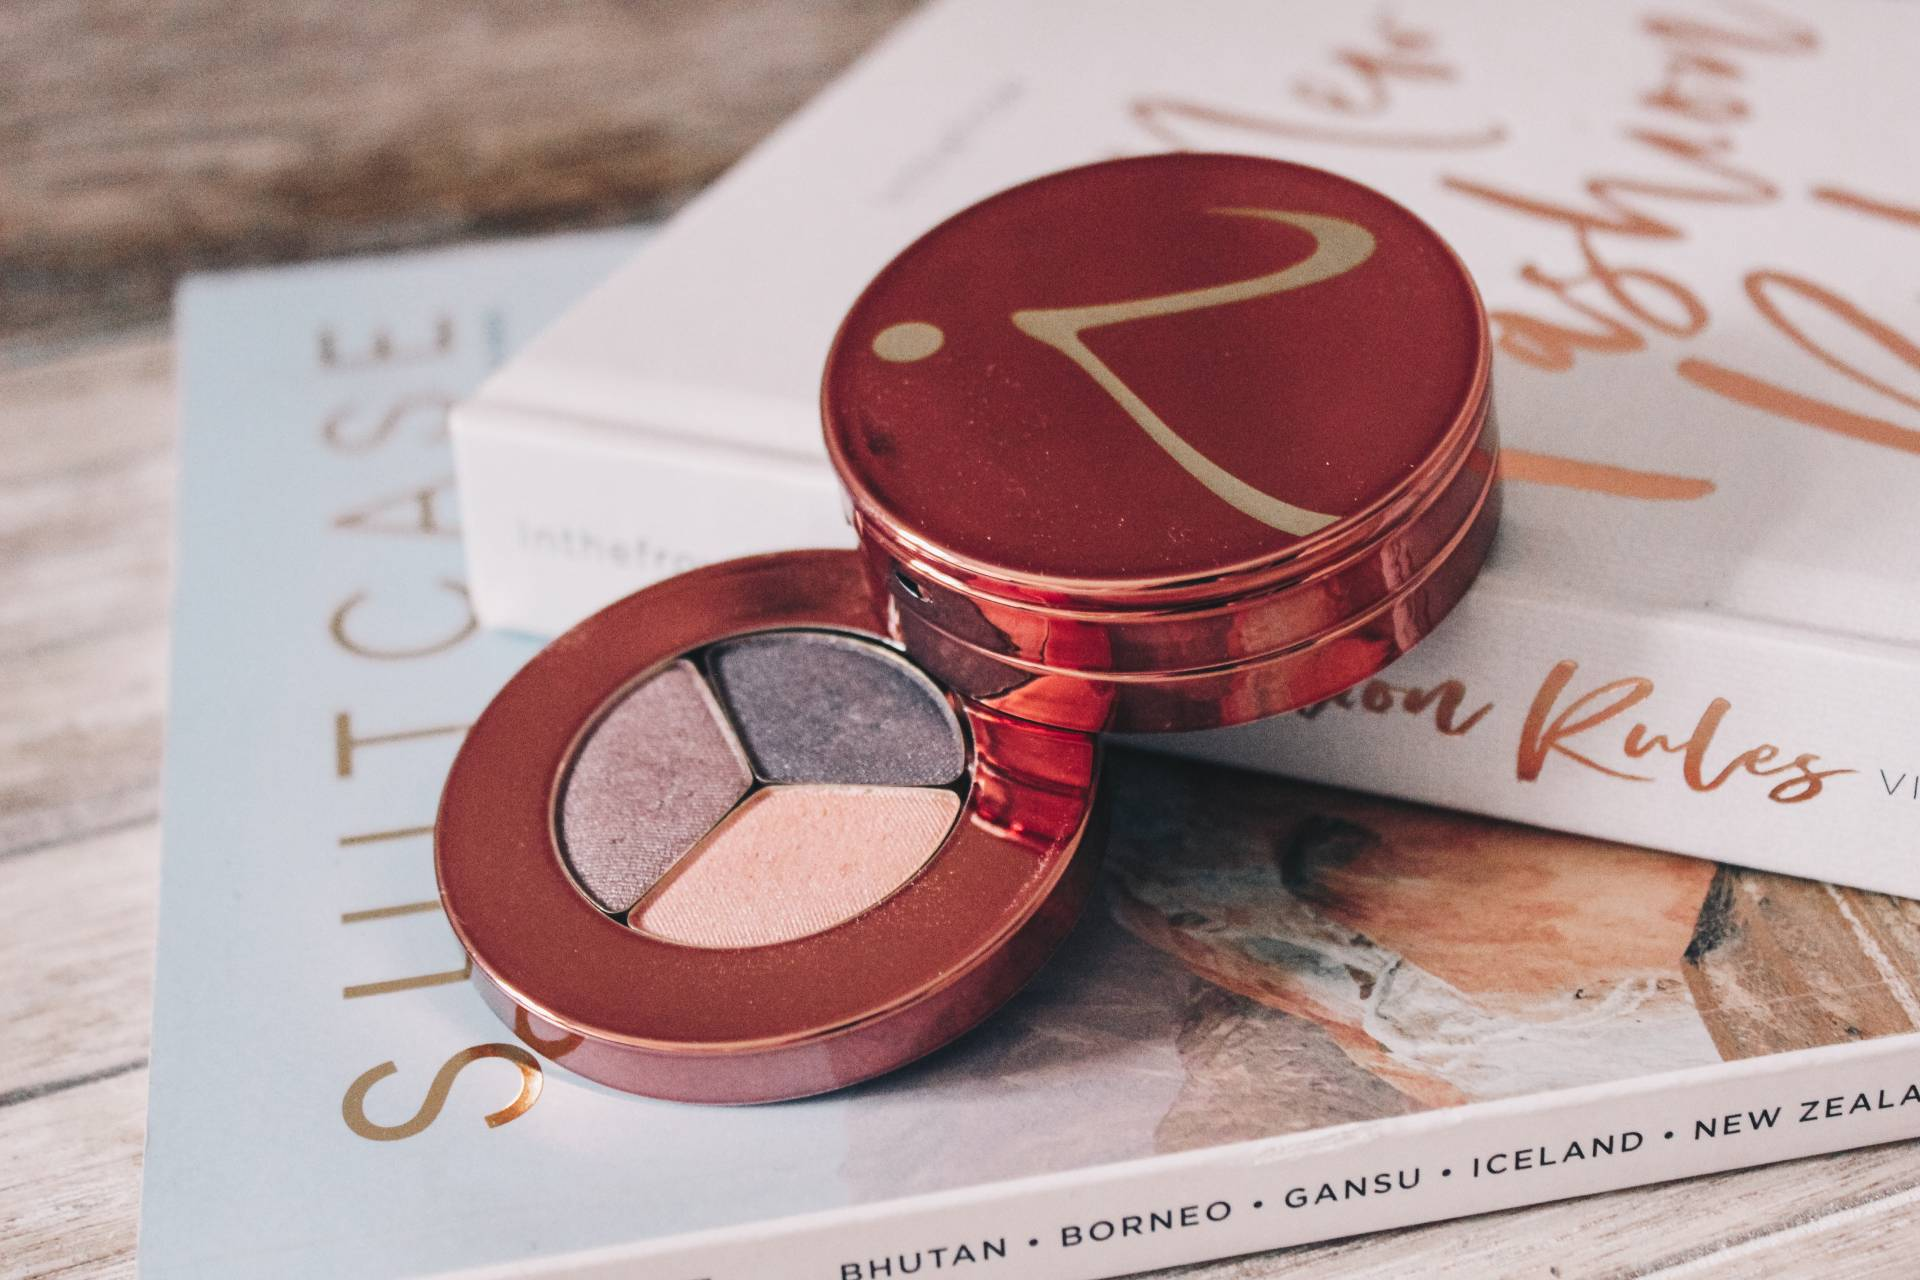 Jane Iredale snap happy makeup kit